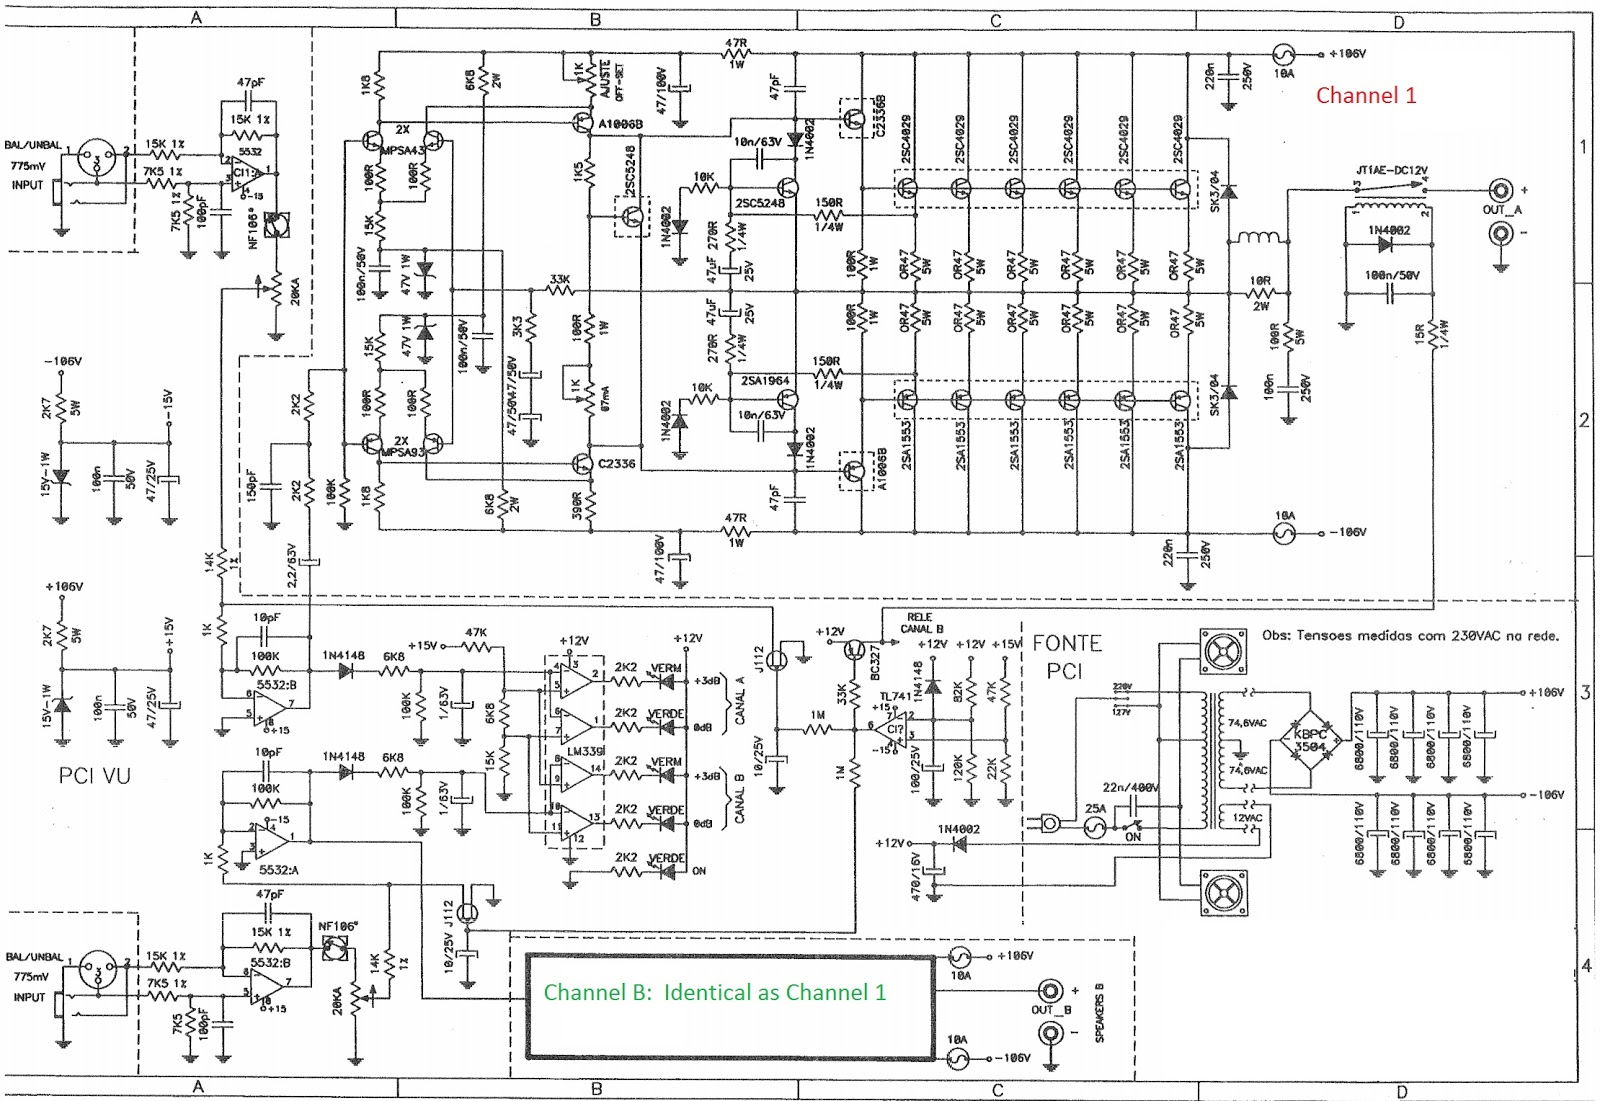 429812358169490221 additionally BA5412 in addition Replicate Thermistor Behavior For Second Sensor moreover Staner Upa8000  lifier 1600watts Rms moreover Schematics. on circuit diagram